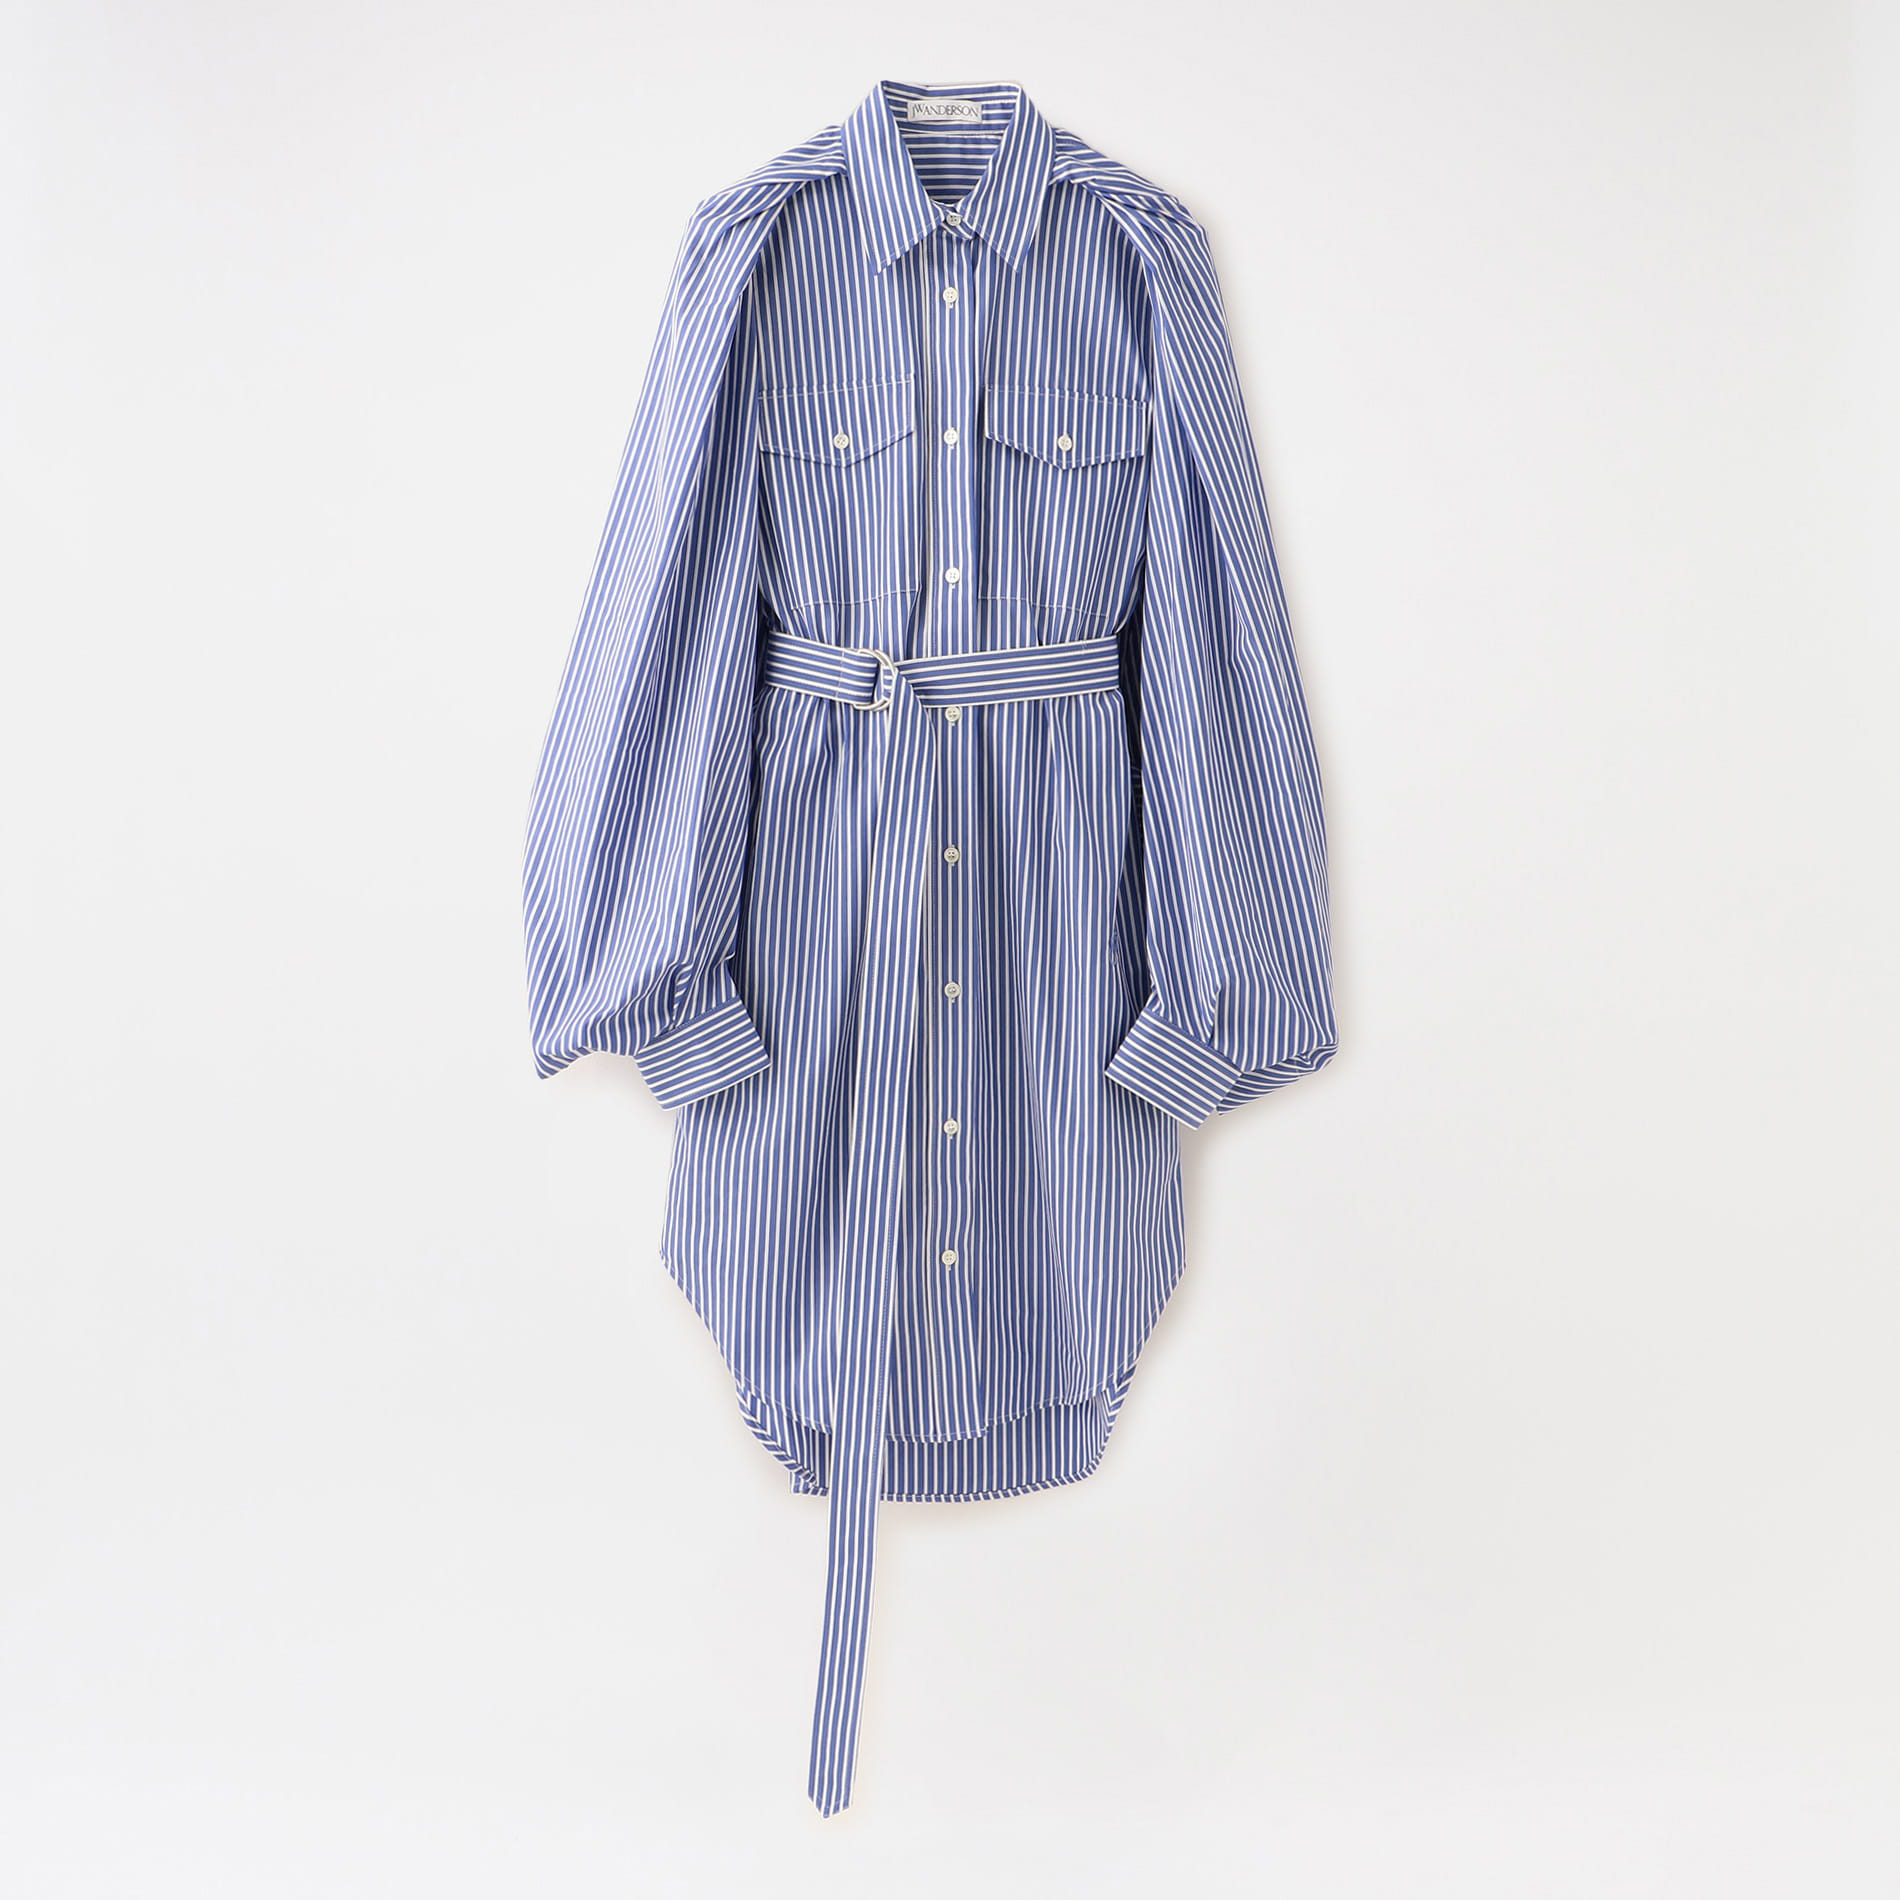 【JW ANDERSON】WOMEN TRENCH SHIRT DRESS DR0089-PG0293